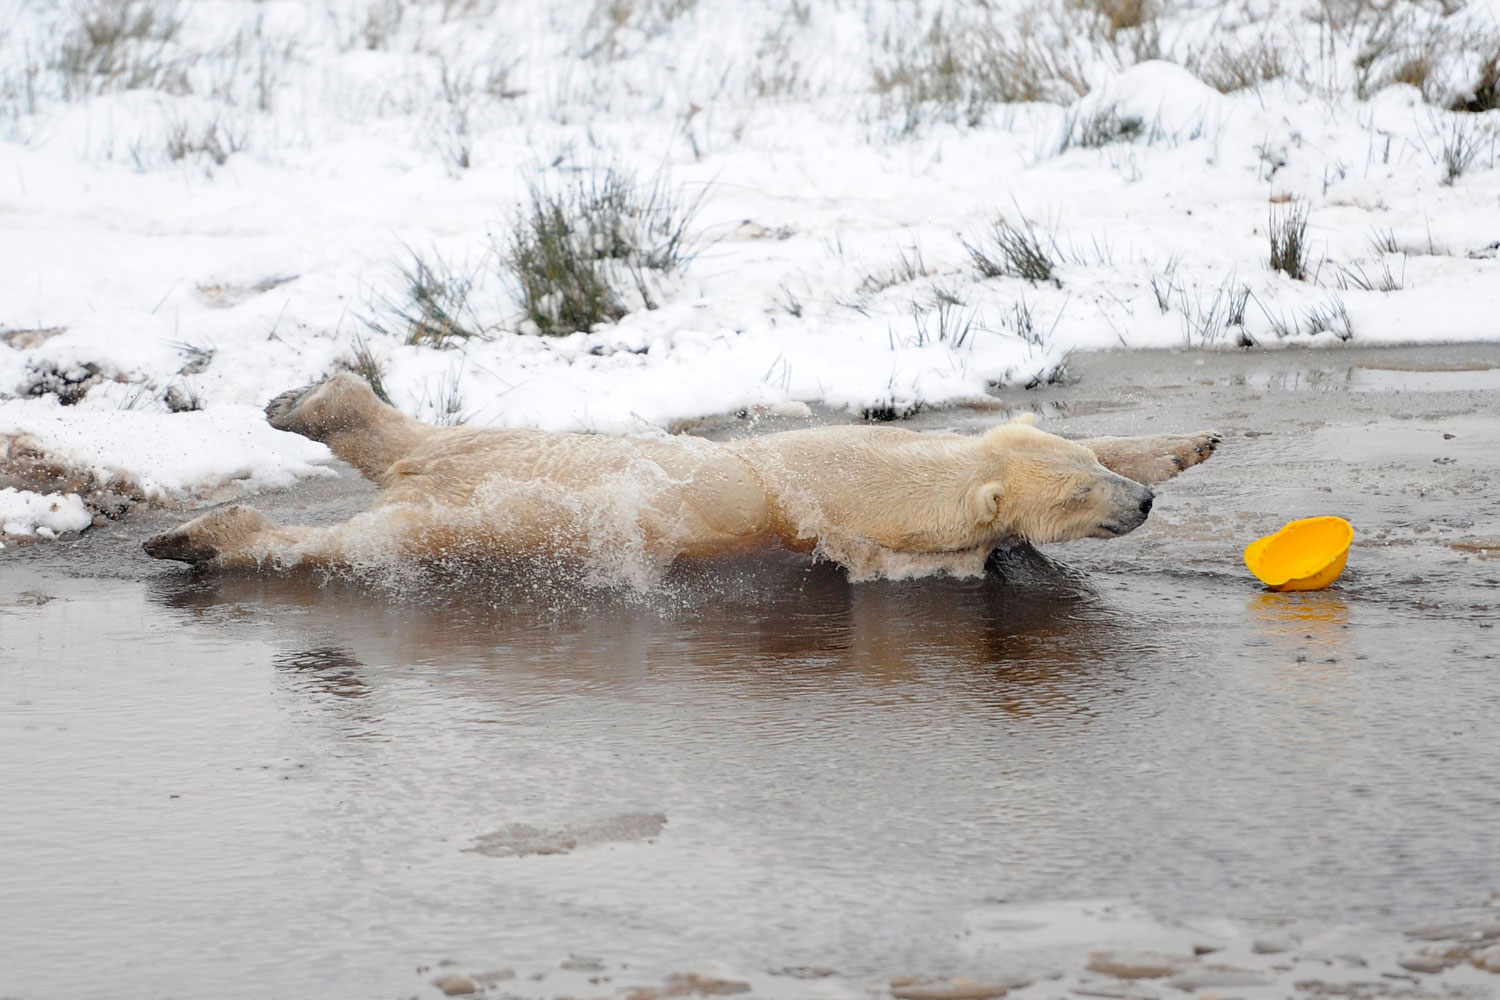 December 7, 2011. Walker, a 368 kg polar bear, chases a plastic helmet in a pond on his third birthday at the Highland Wildlife Park in Kincraig, Scotland.